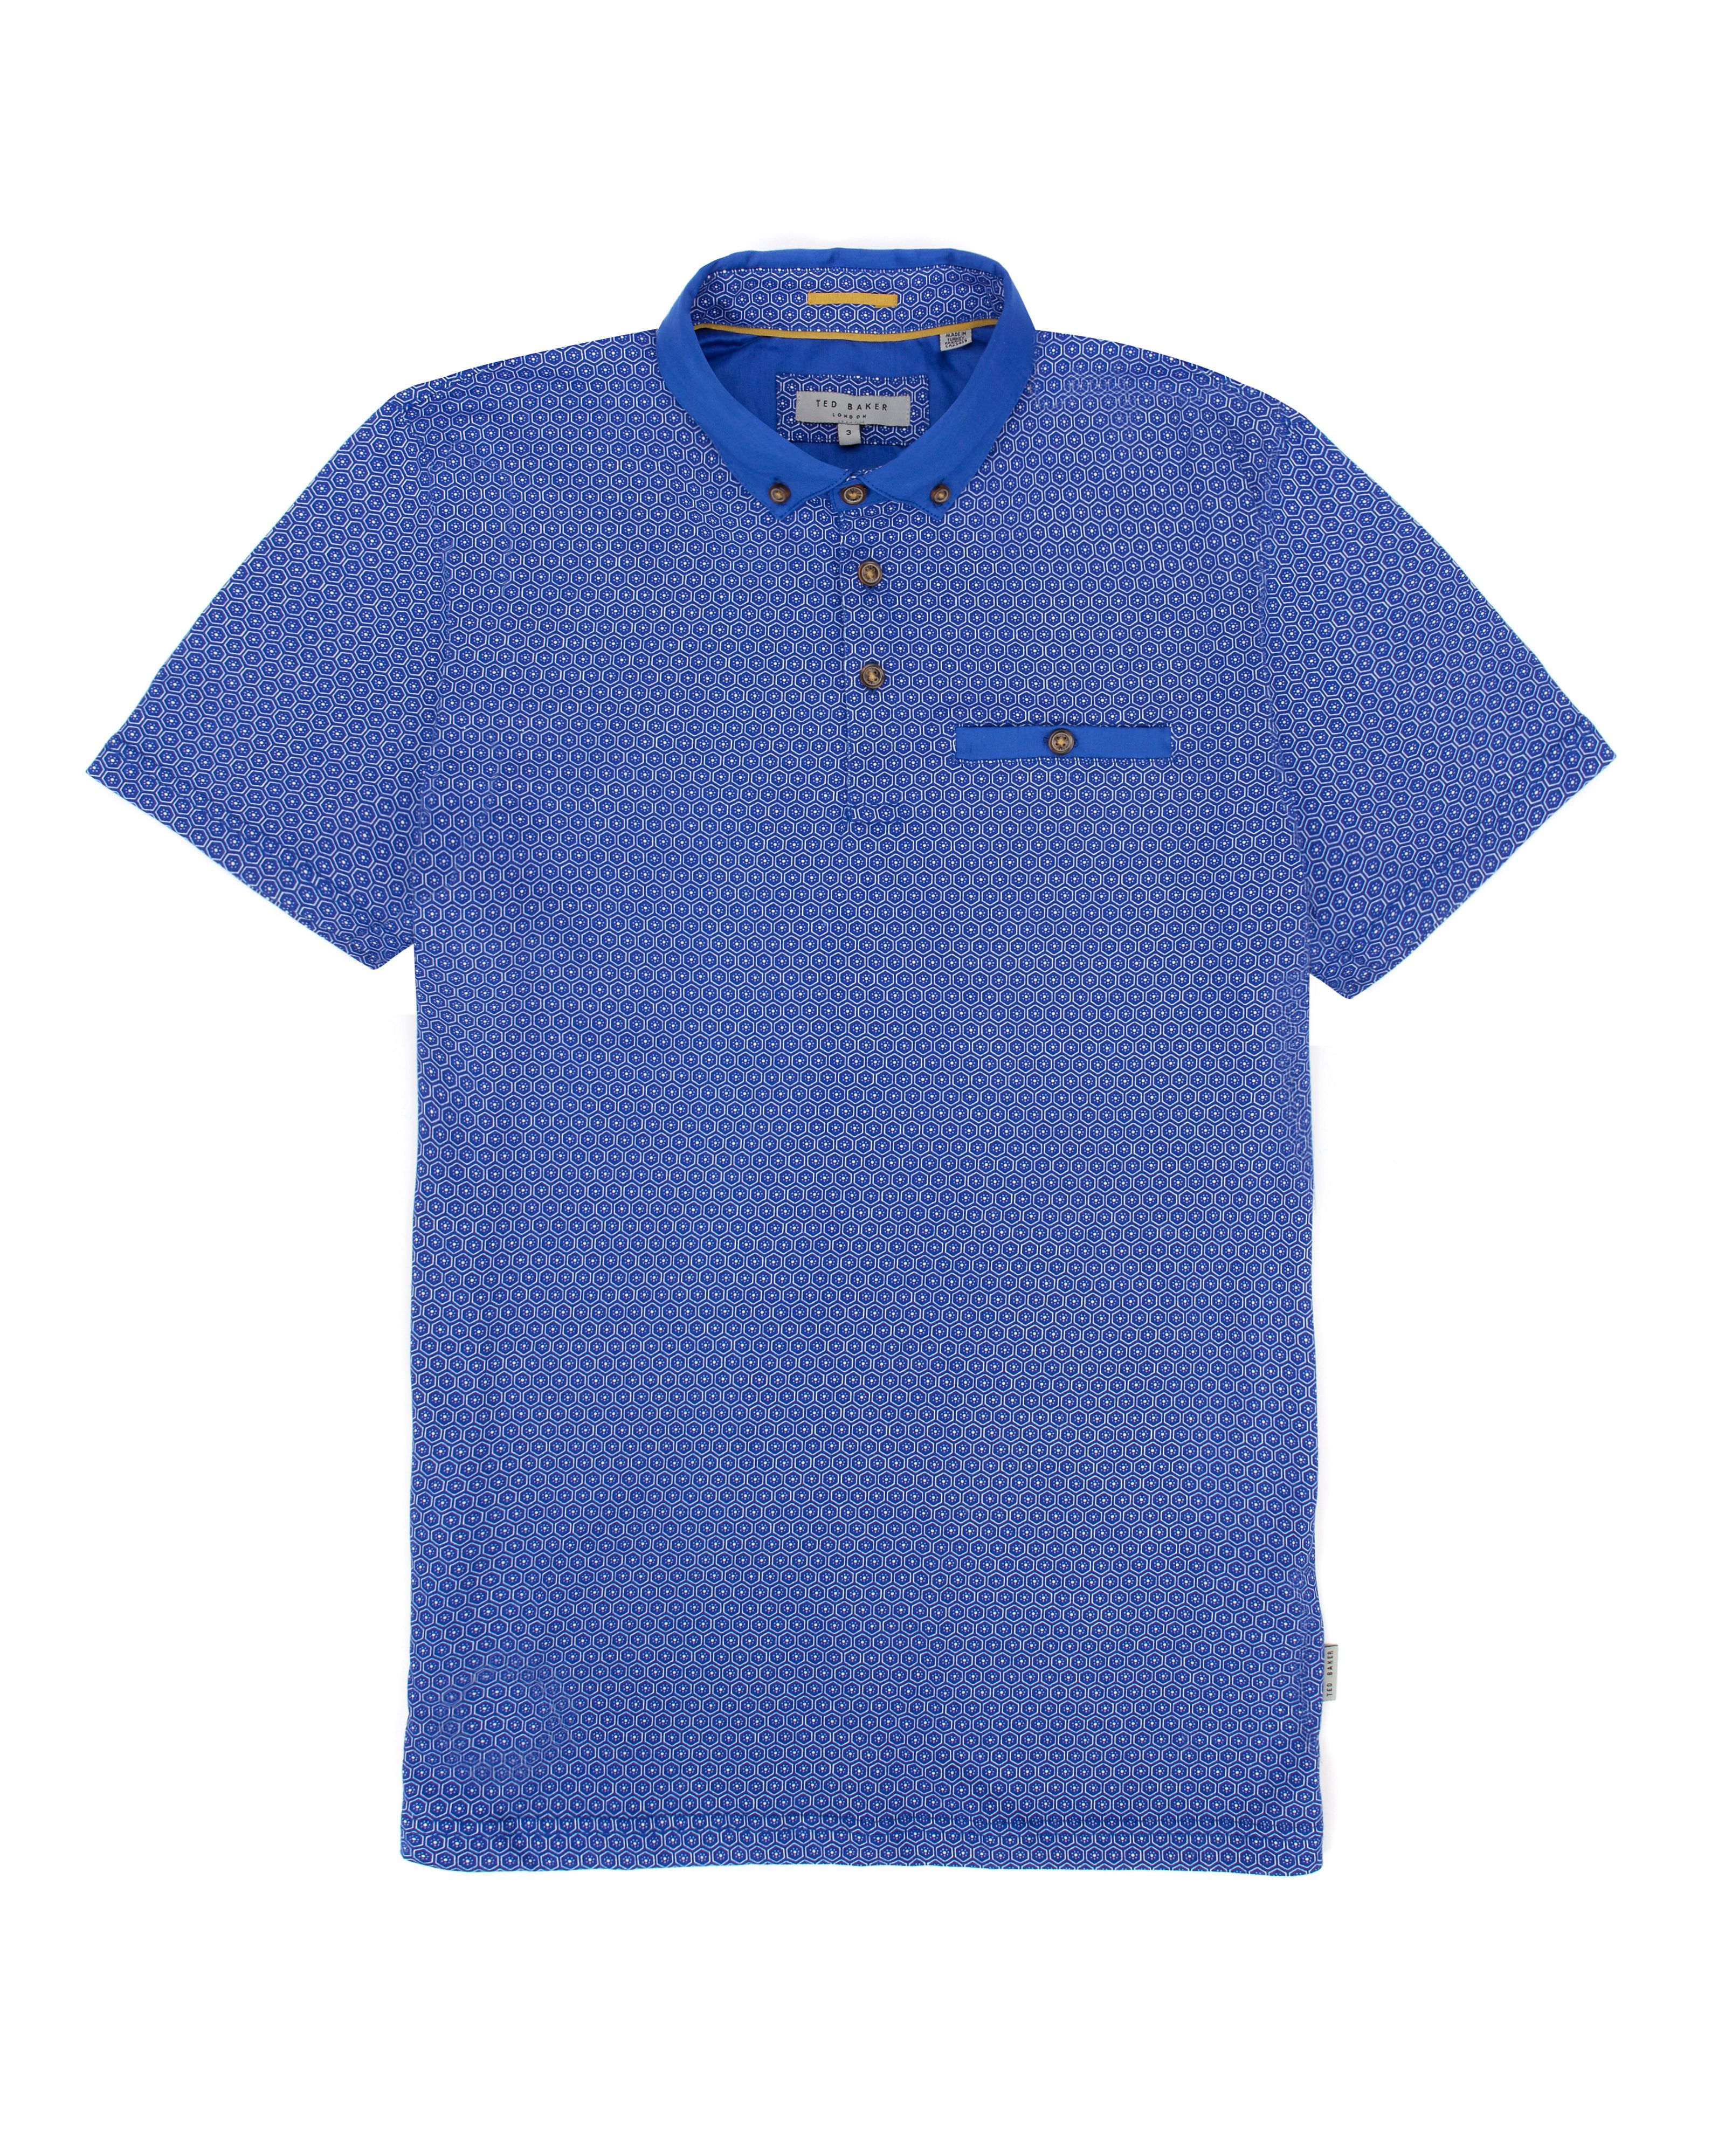 Elwhite short sleeve printed polo